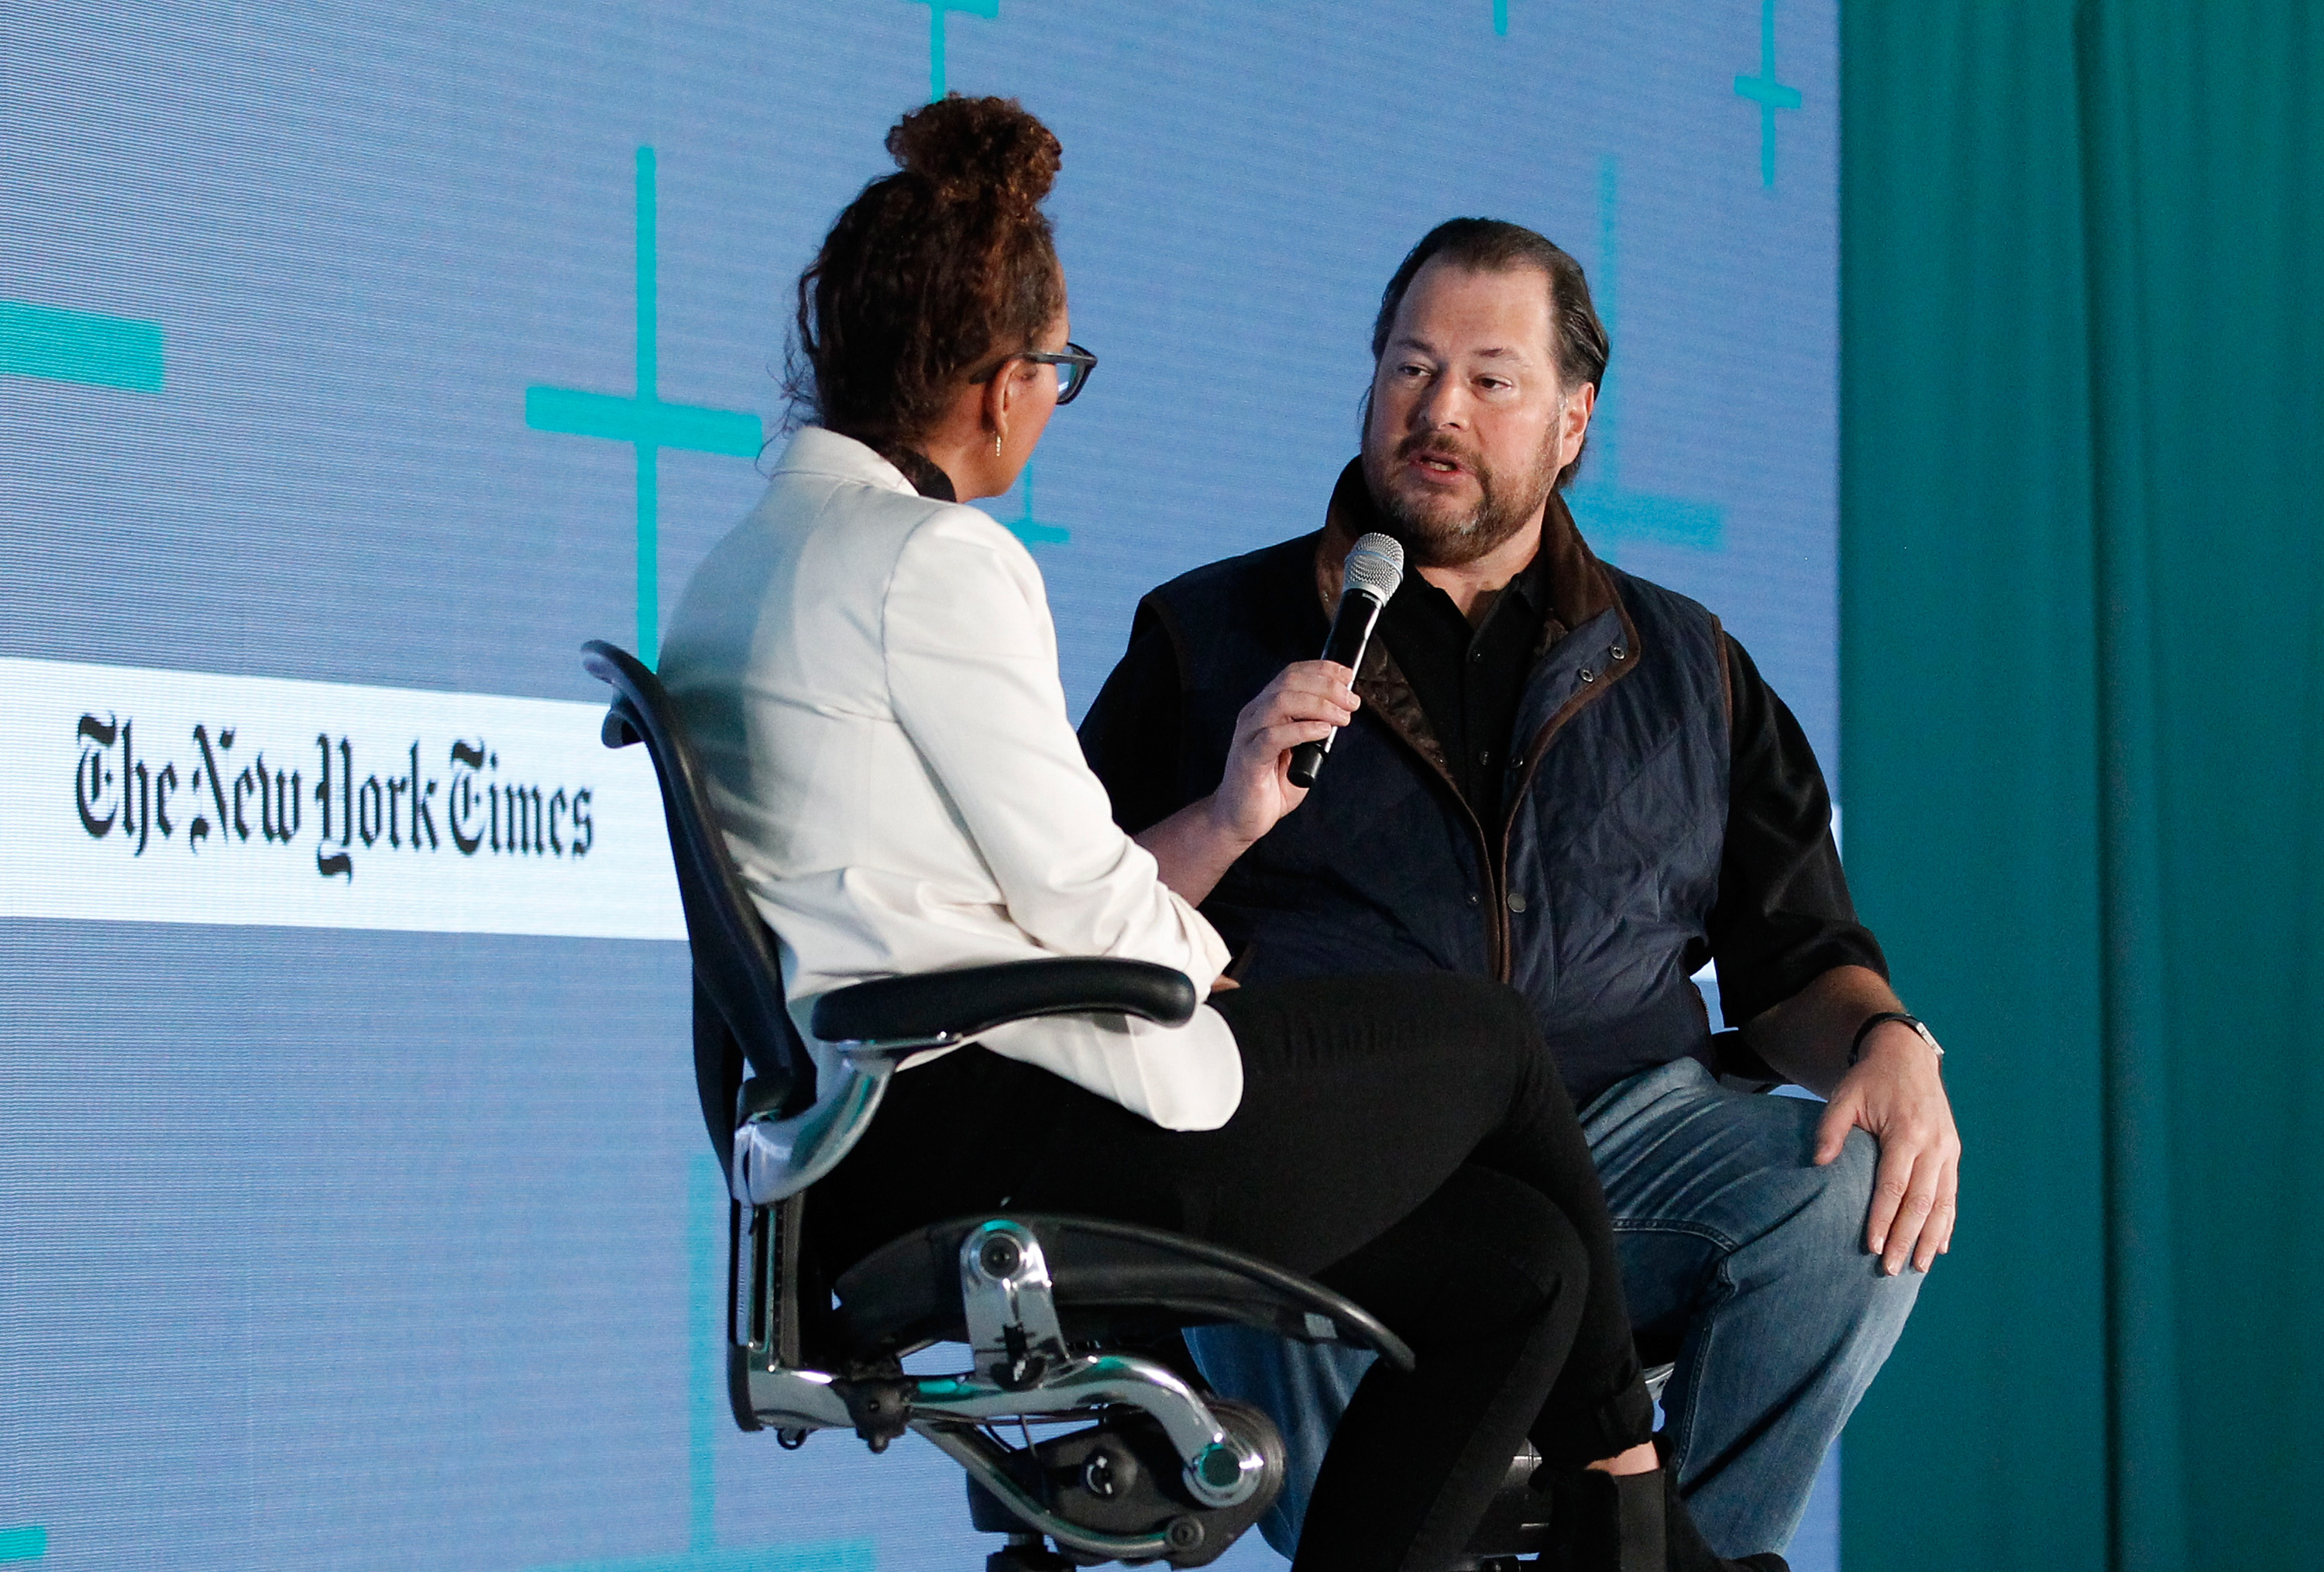 HALF MOON BAY, CA - MARCH 01: Jenna Wortham, The New York Times Magazine Staff Writer (L) and Marc Benioff, Chairman and C.E.O. of Salesforce, speak onstage at The New York Times New Work Summit on March 1, 2016 in Half Moon Bay, California. (Photo by Kimberly White/Getty Images for New York Times)